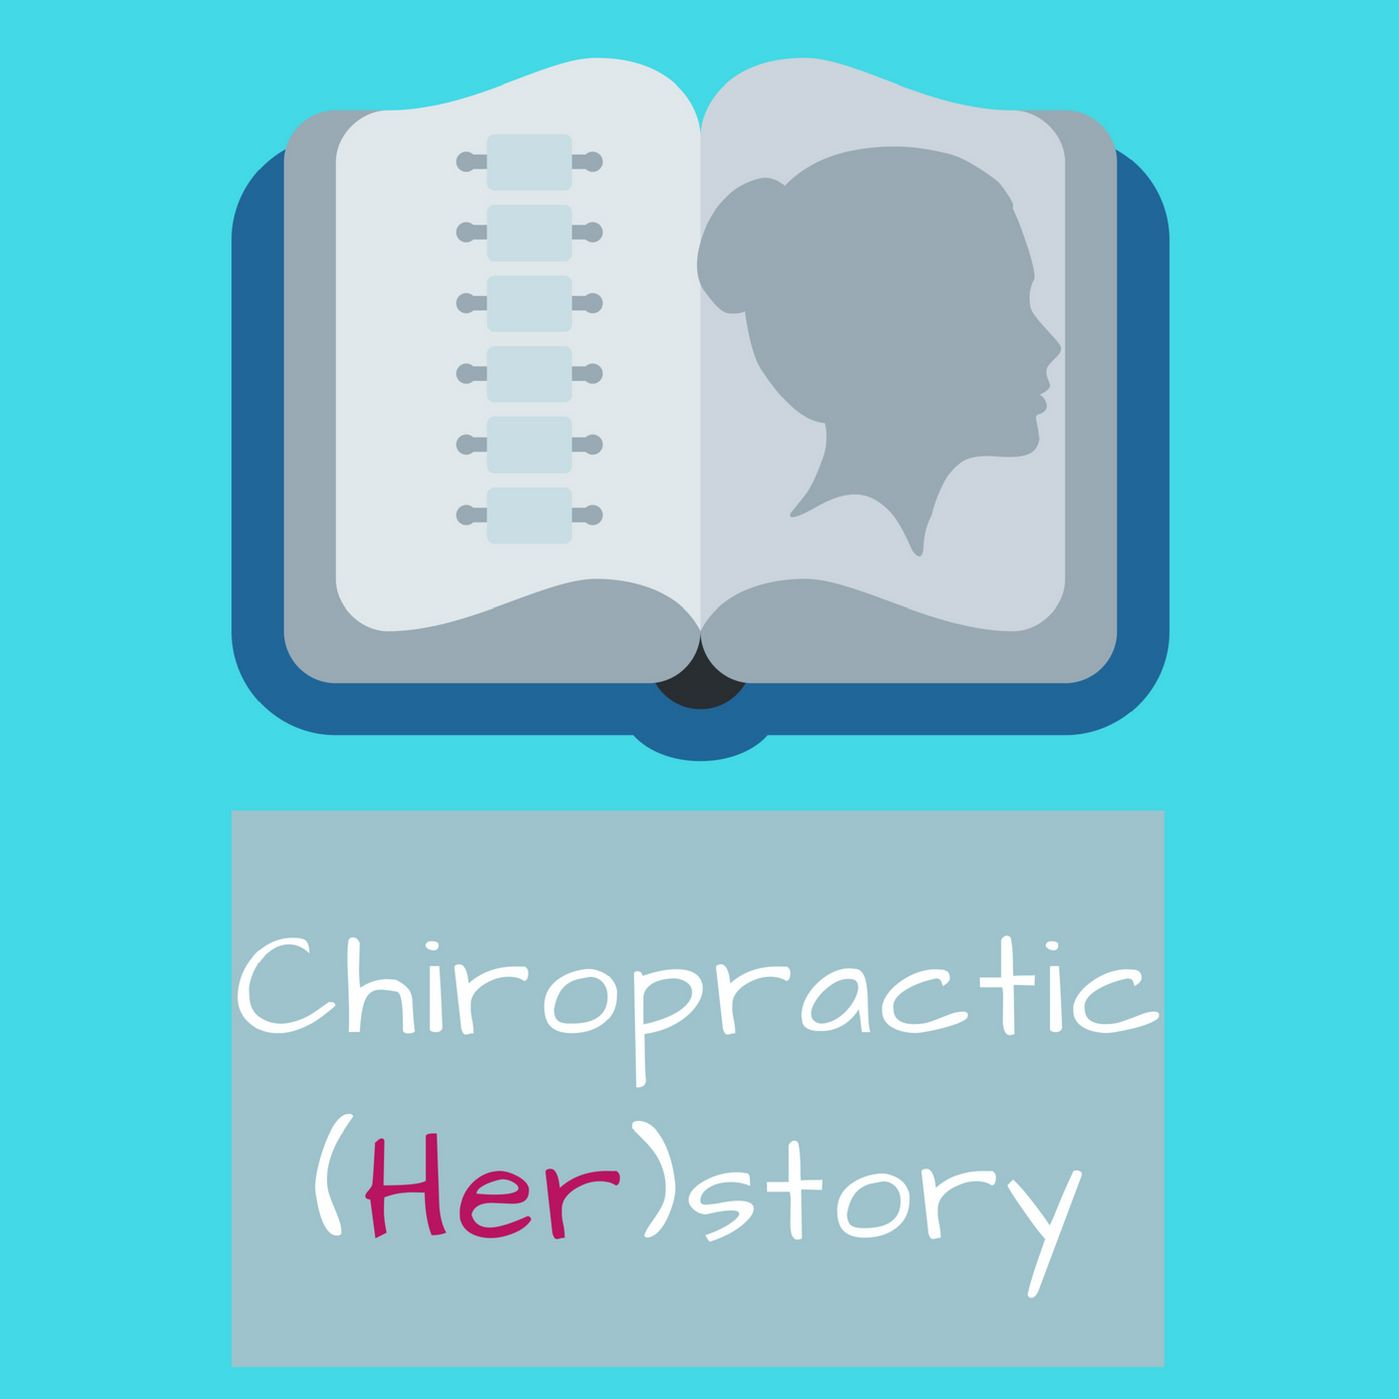 Dr. Jenifer Epstein- Chiropractic (Her)story Episode 53